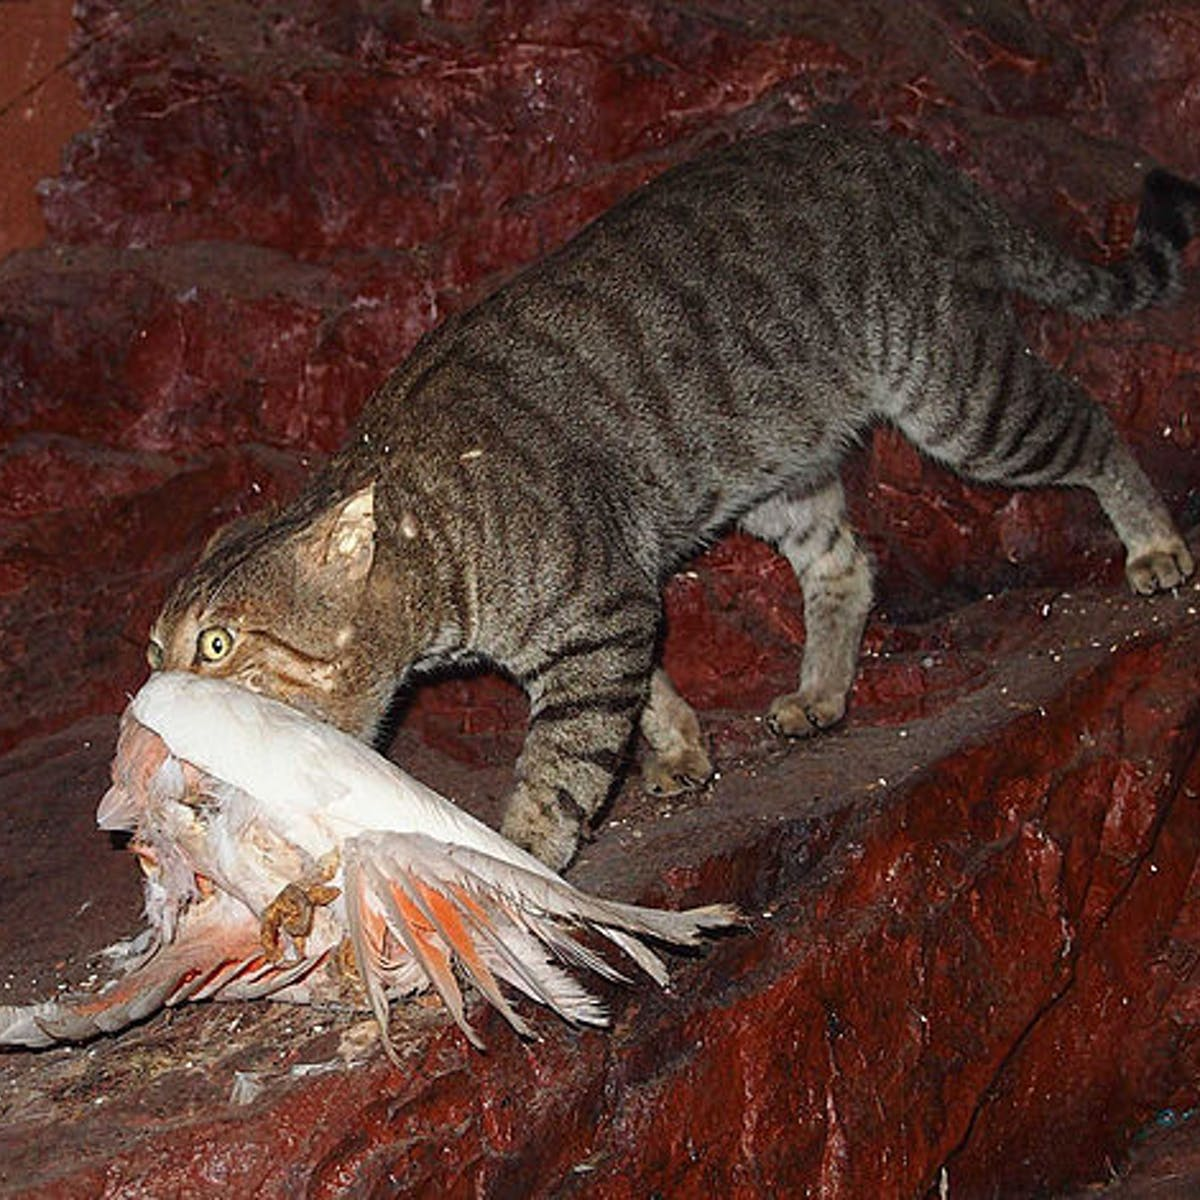 Australia's war on feral cats: shaky science, missing ethics